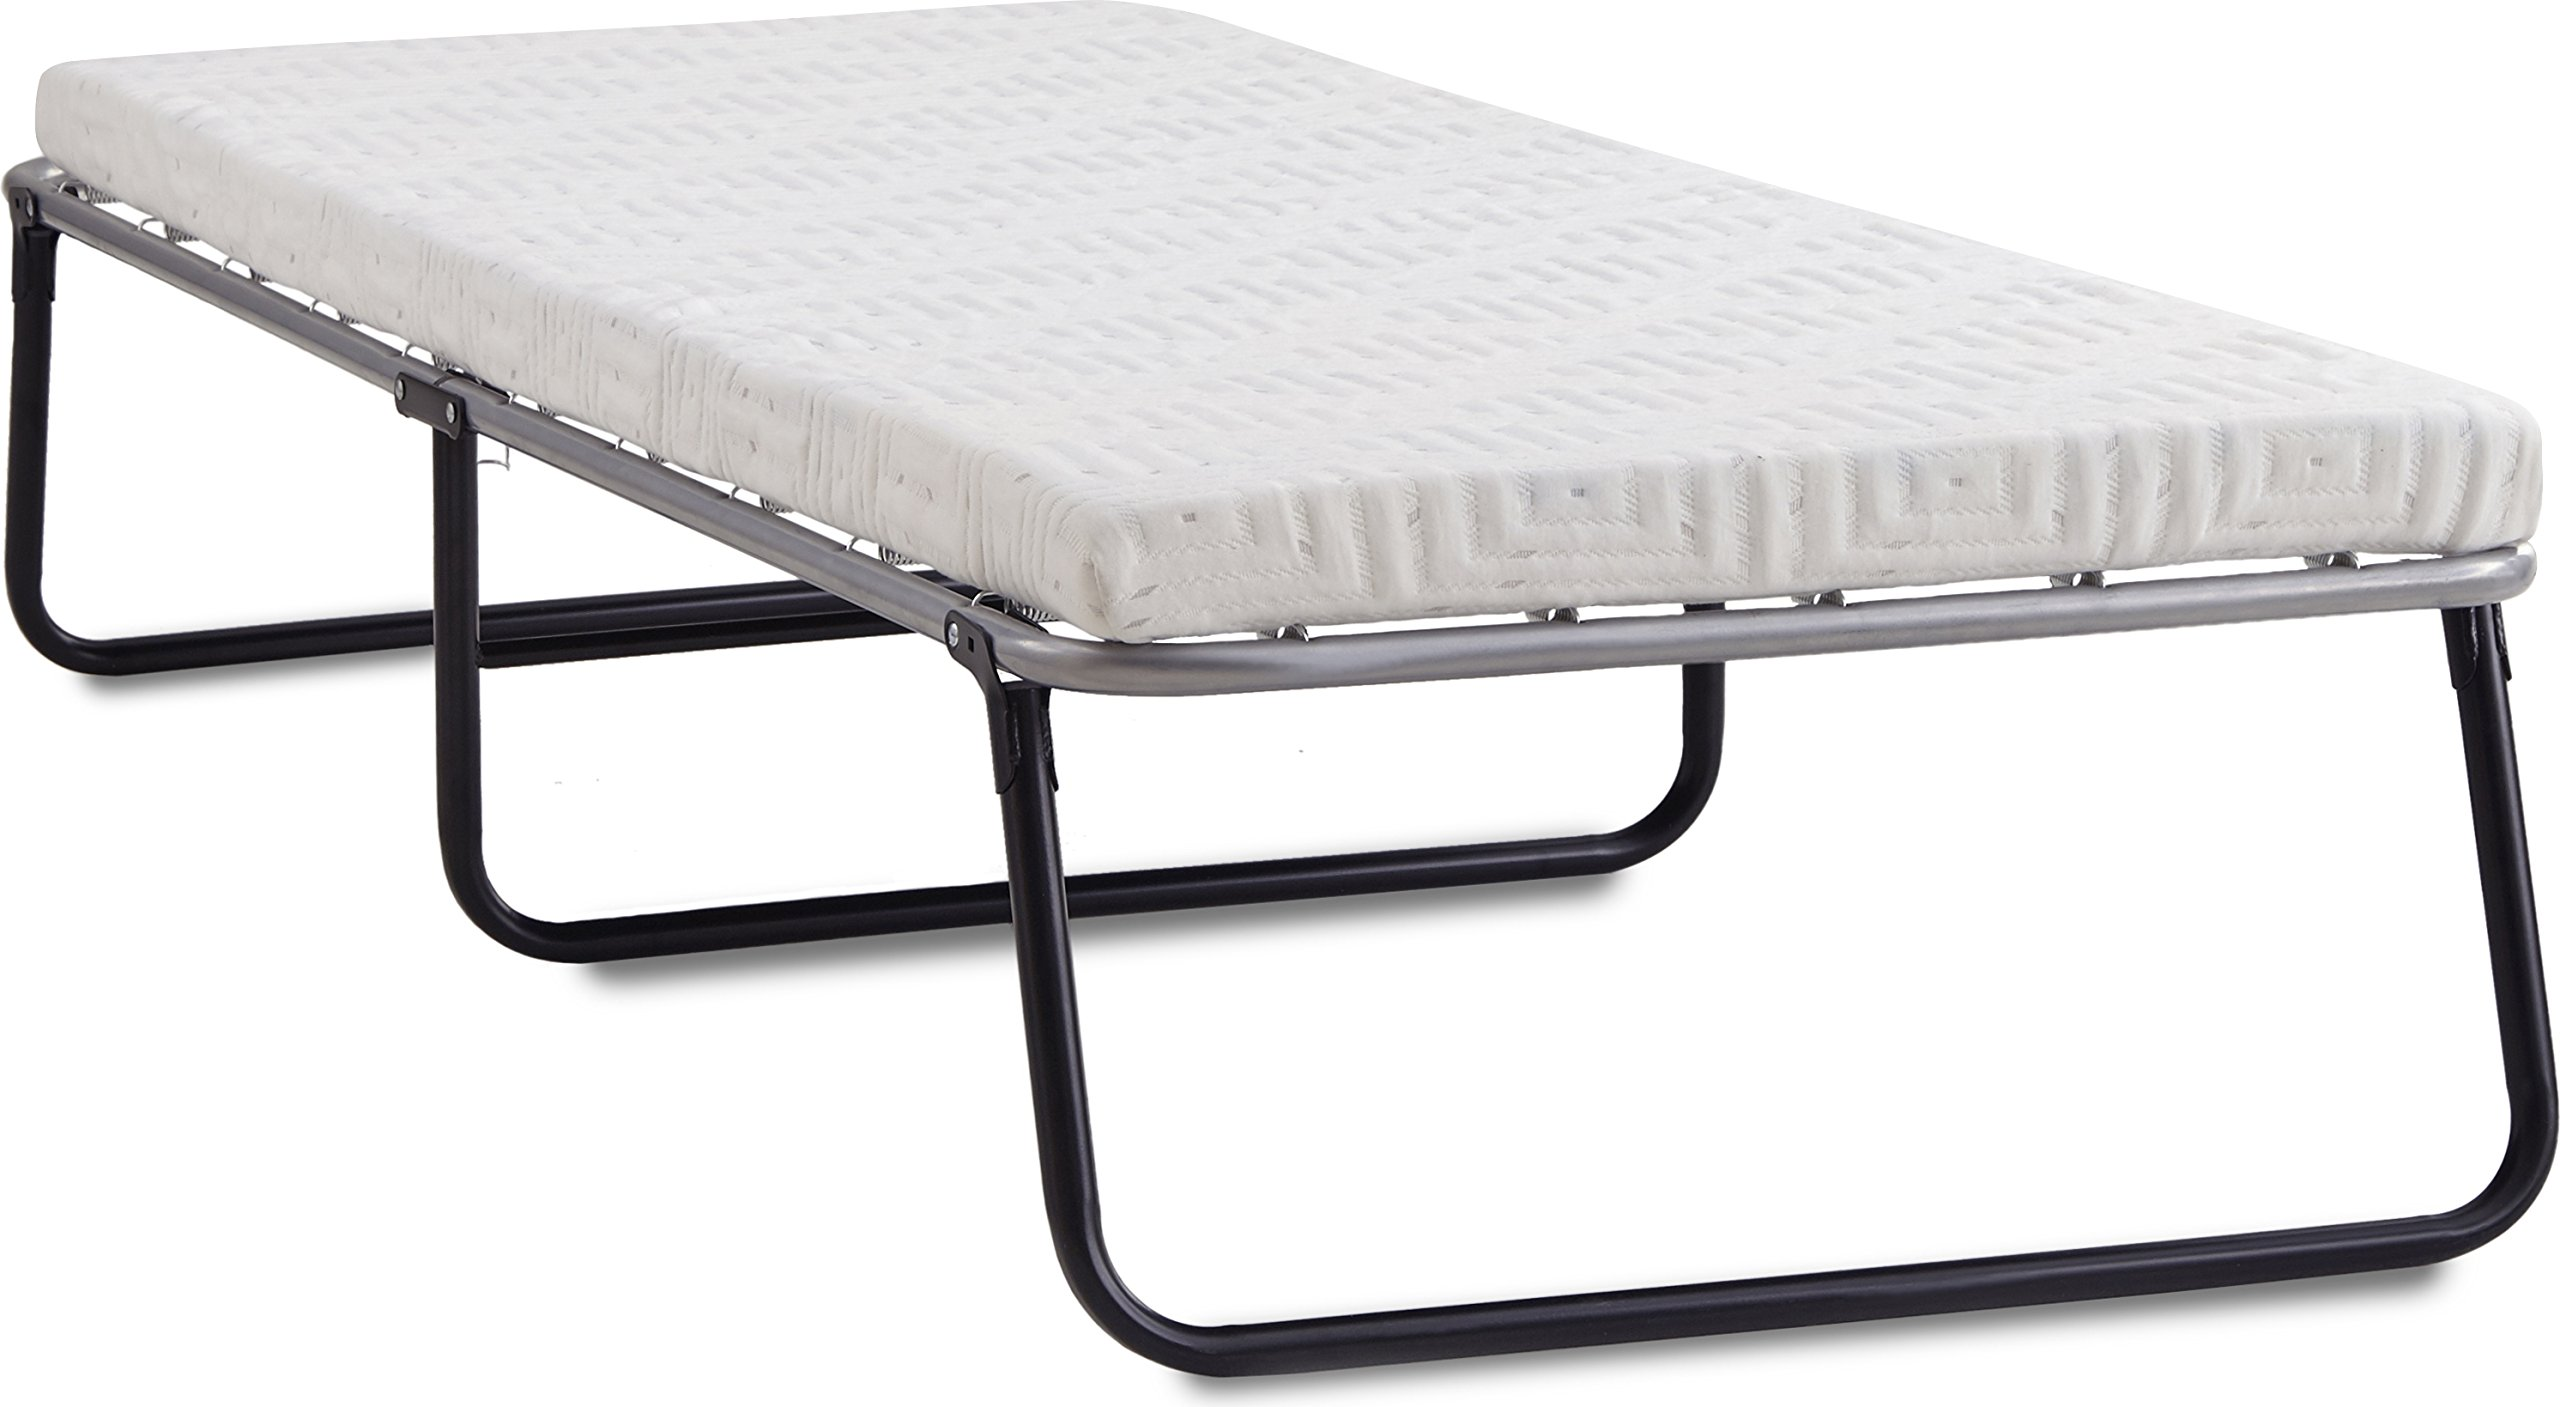 Broyhill Foldaway Guest Bed: Folding Steel Frame with Gel Memory Foam Mattress, 3'' Twin by Broyhill